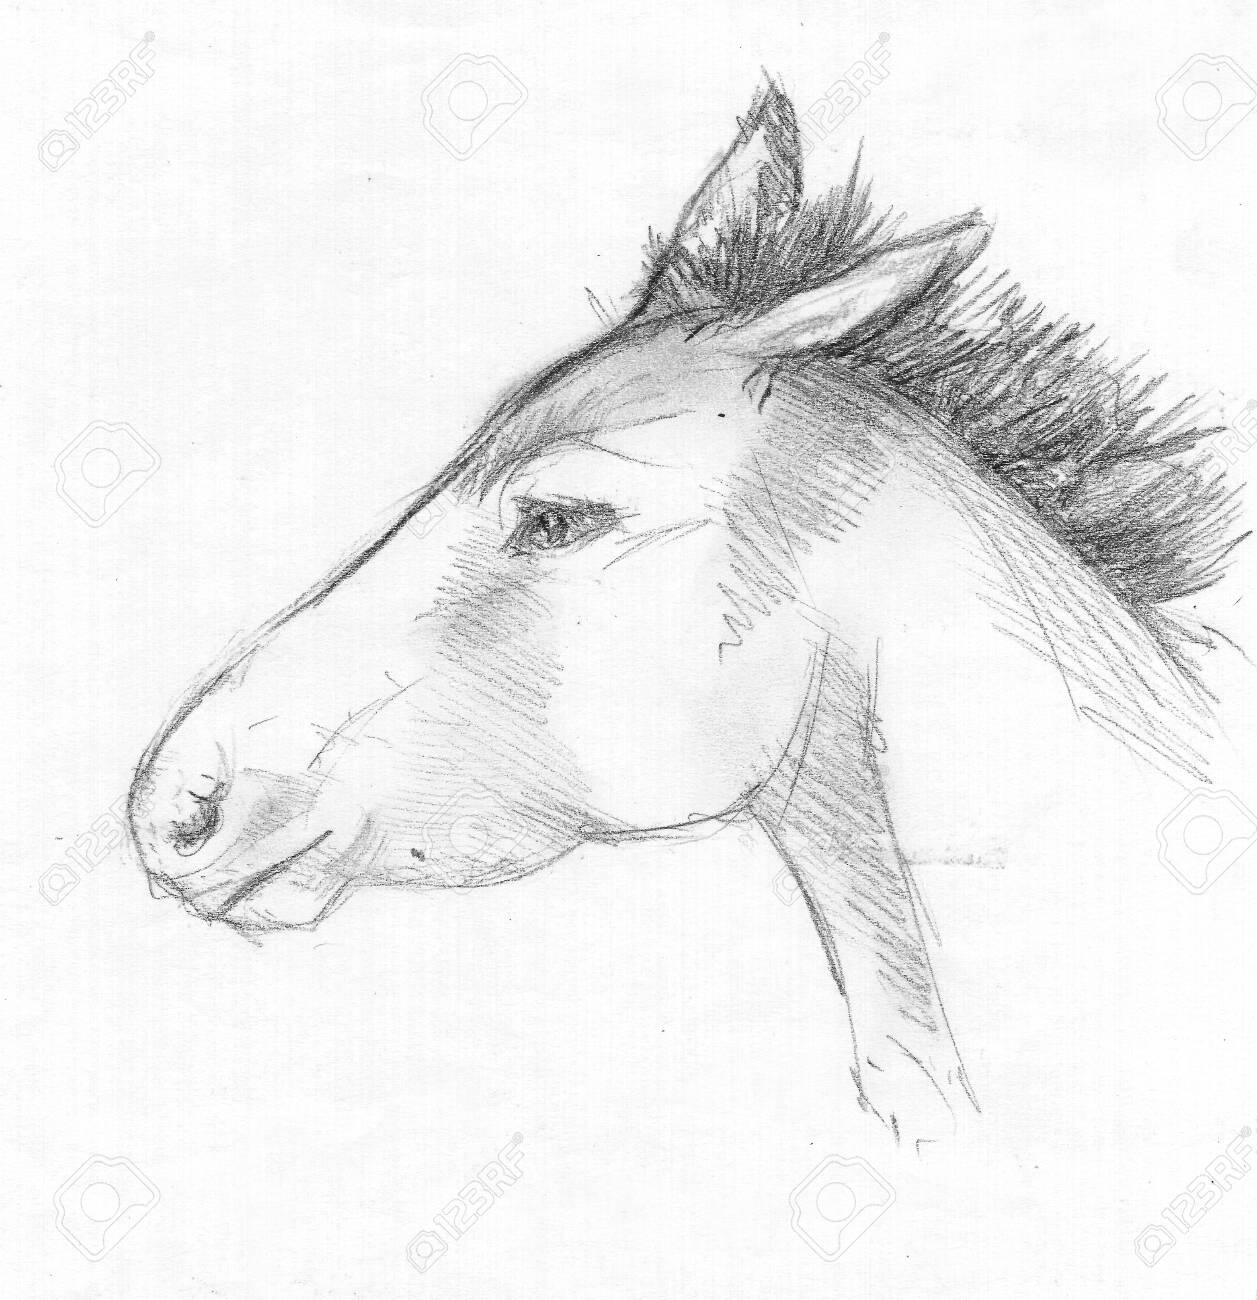 Sketch Of A Wild Horses Head Charcoal Stock Photo Picture And Royalty Free Image Image 150112000